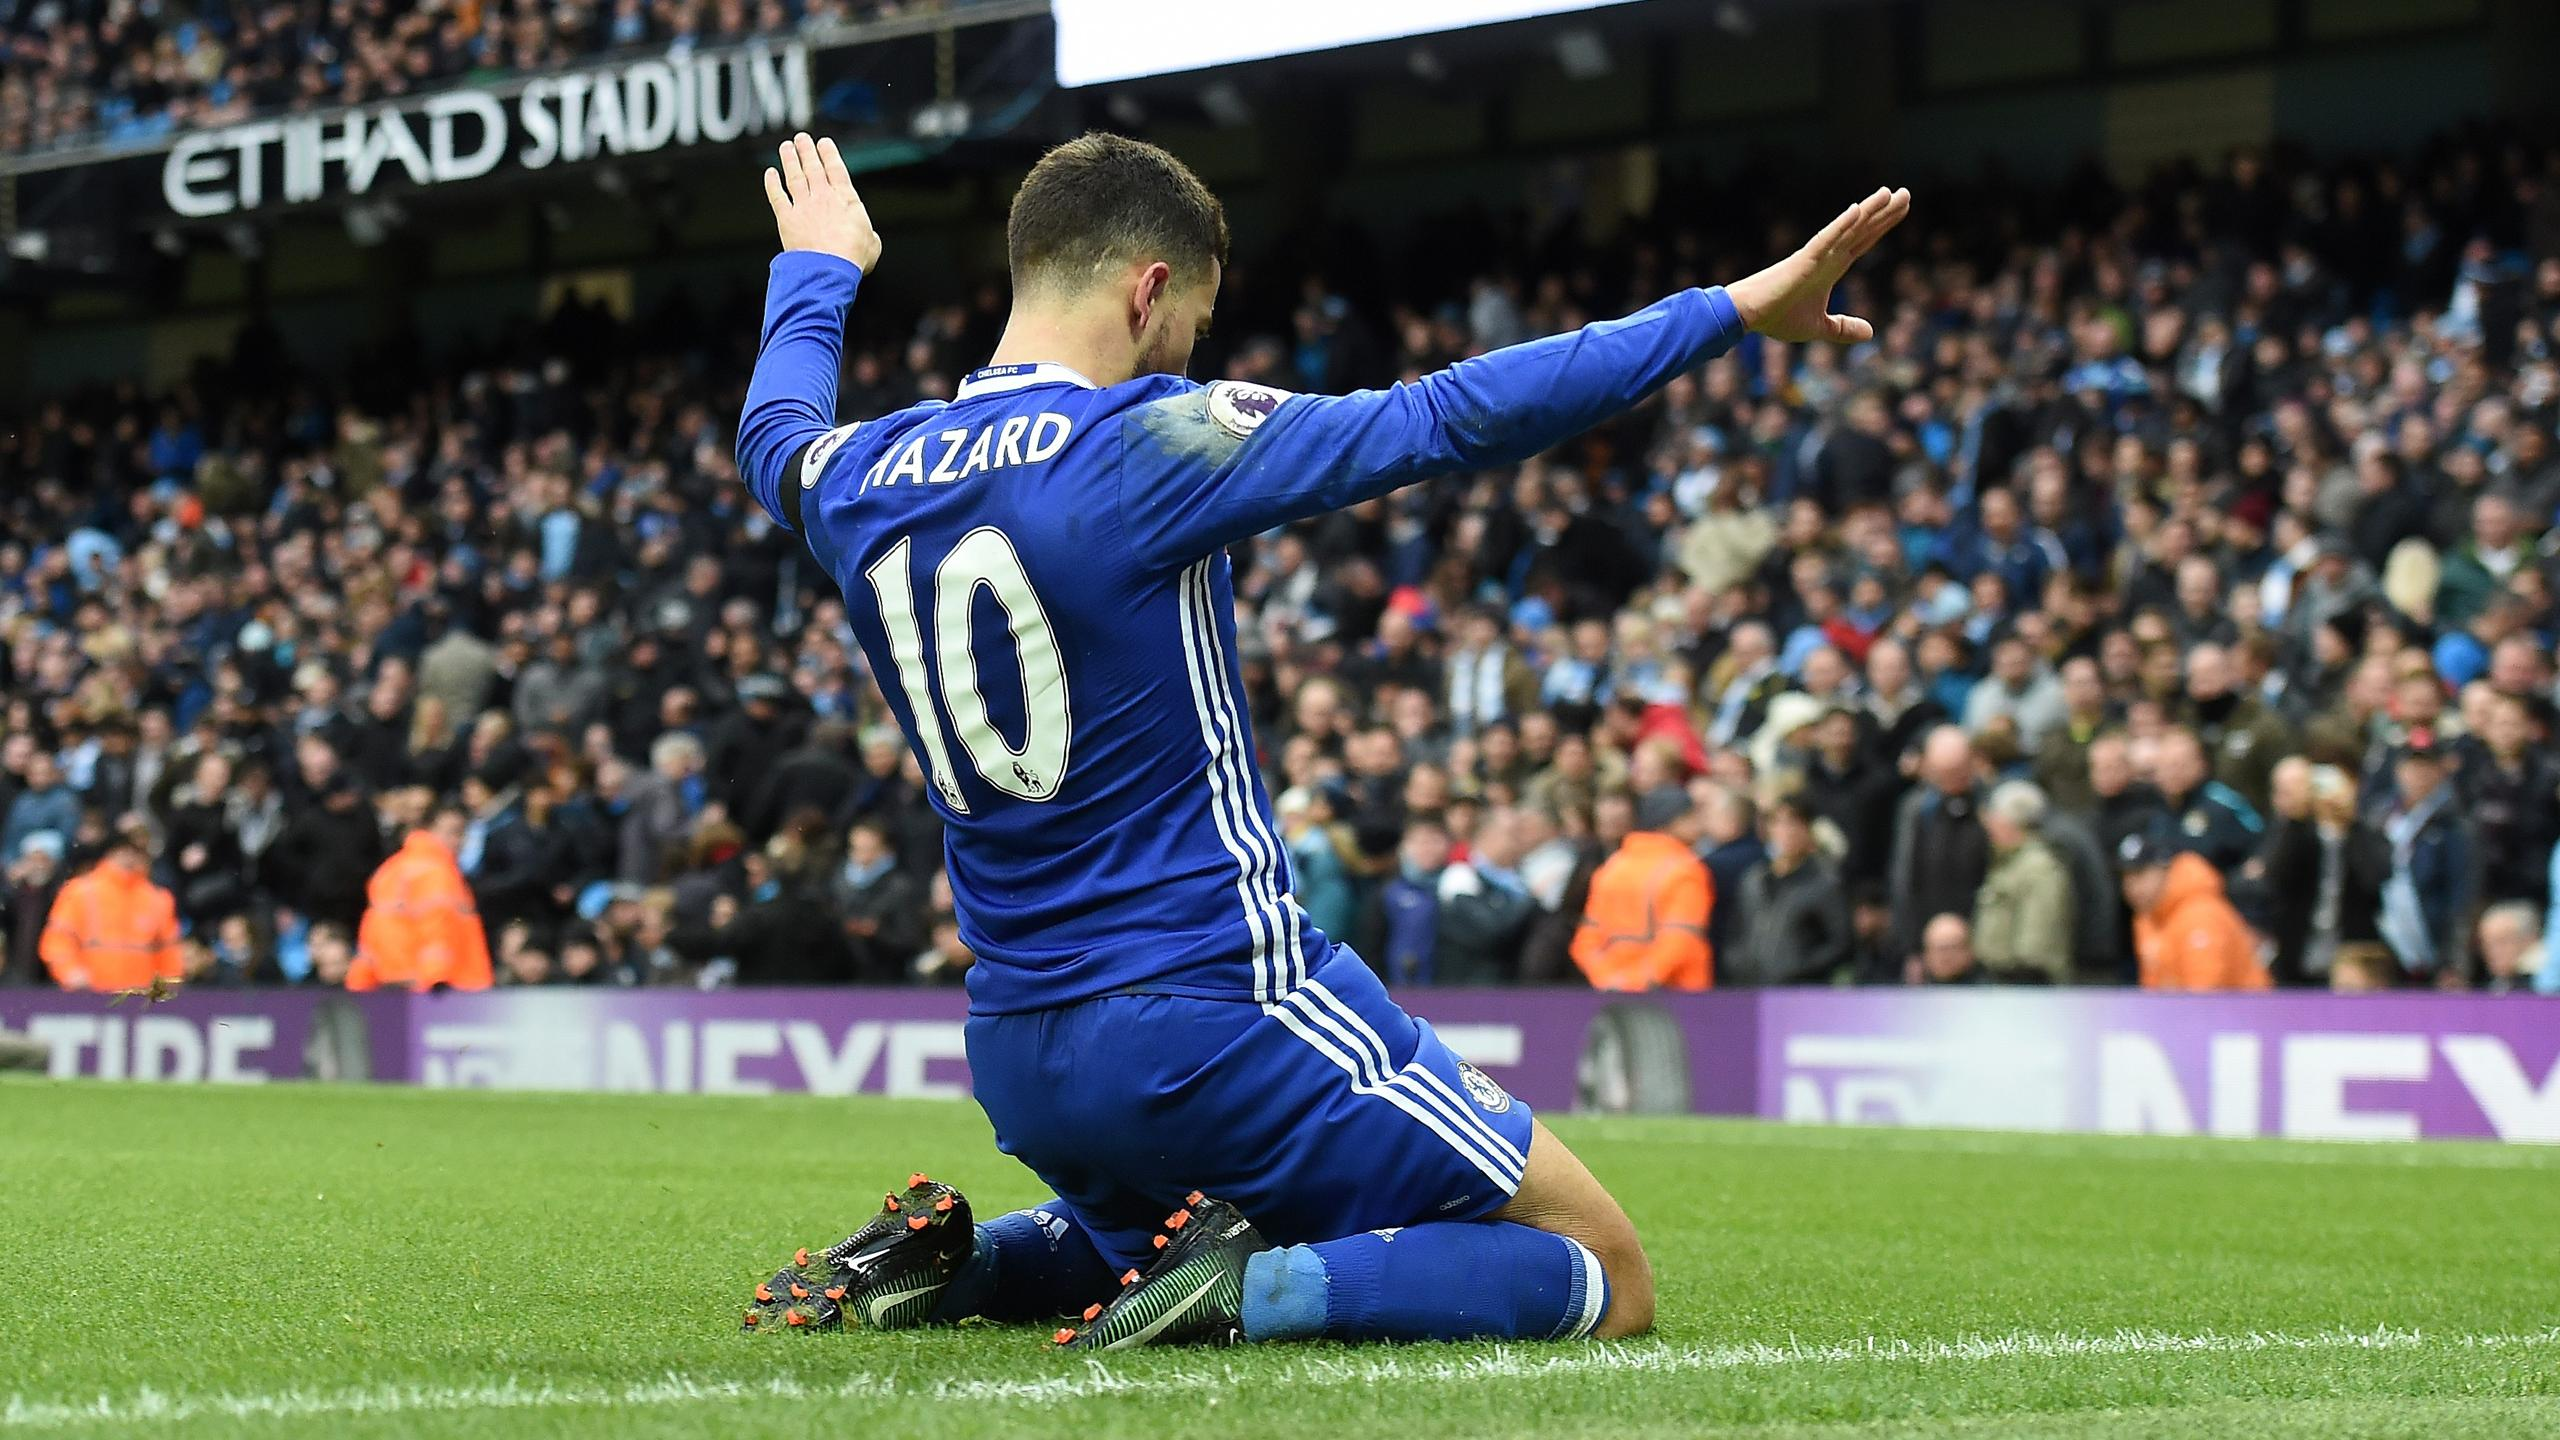 Chelsea's Belgian midfielder Eden Hazard celebrates scoring his team's third goal during the English Premier League football match between Manchester City and Chelsea at the Etihad Stadium in Manchester, north west England, on December 3, 2016